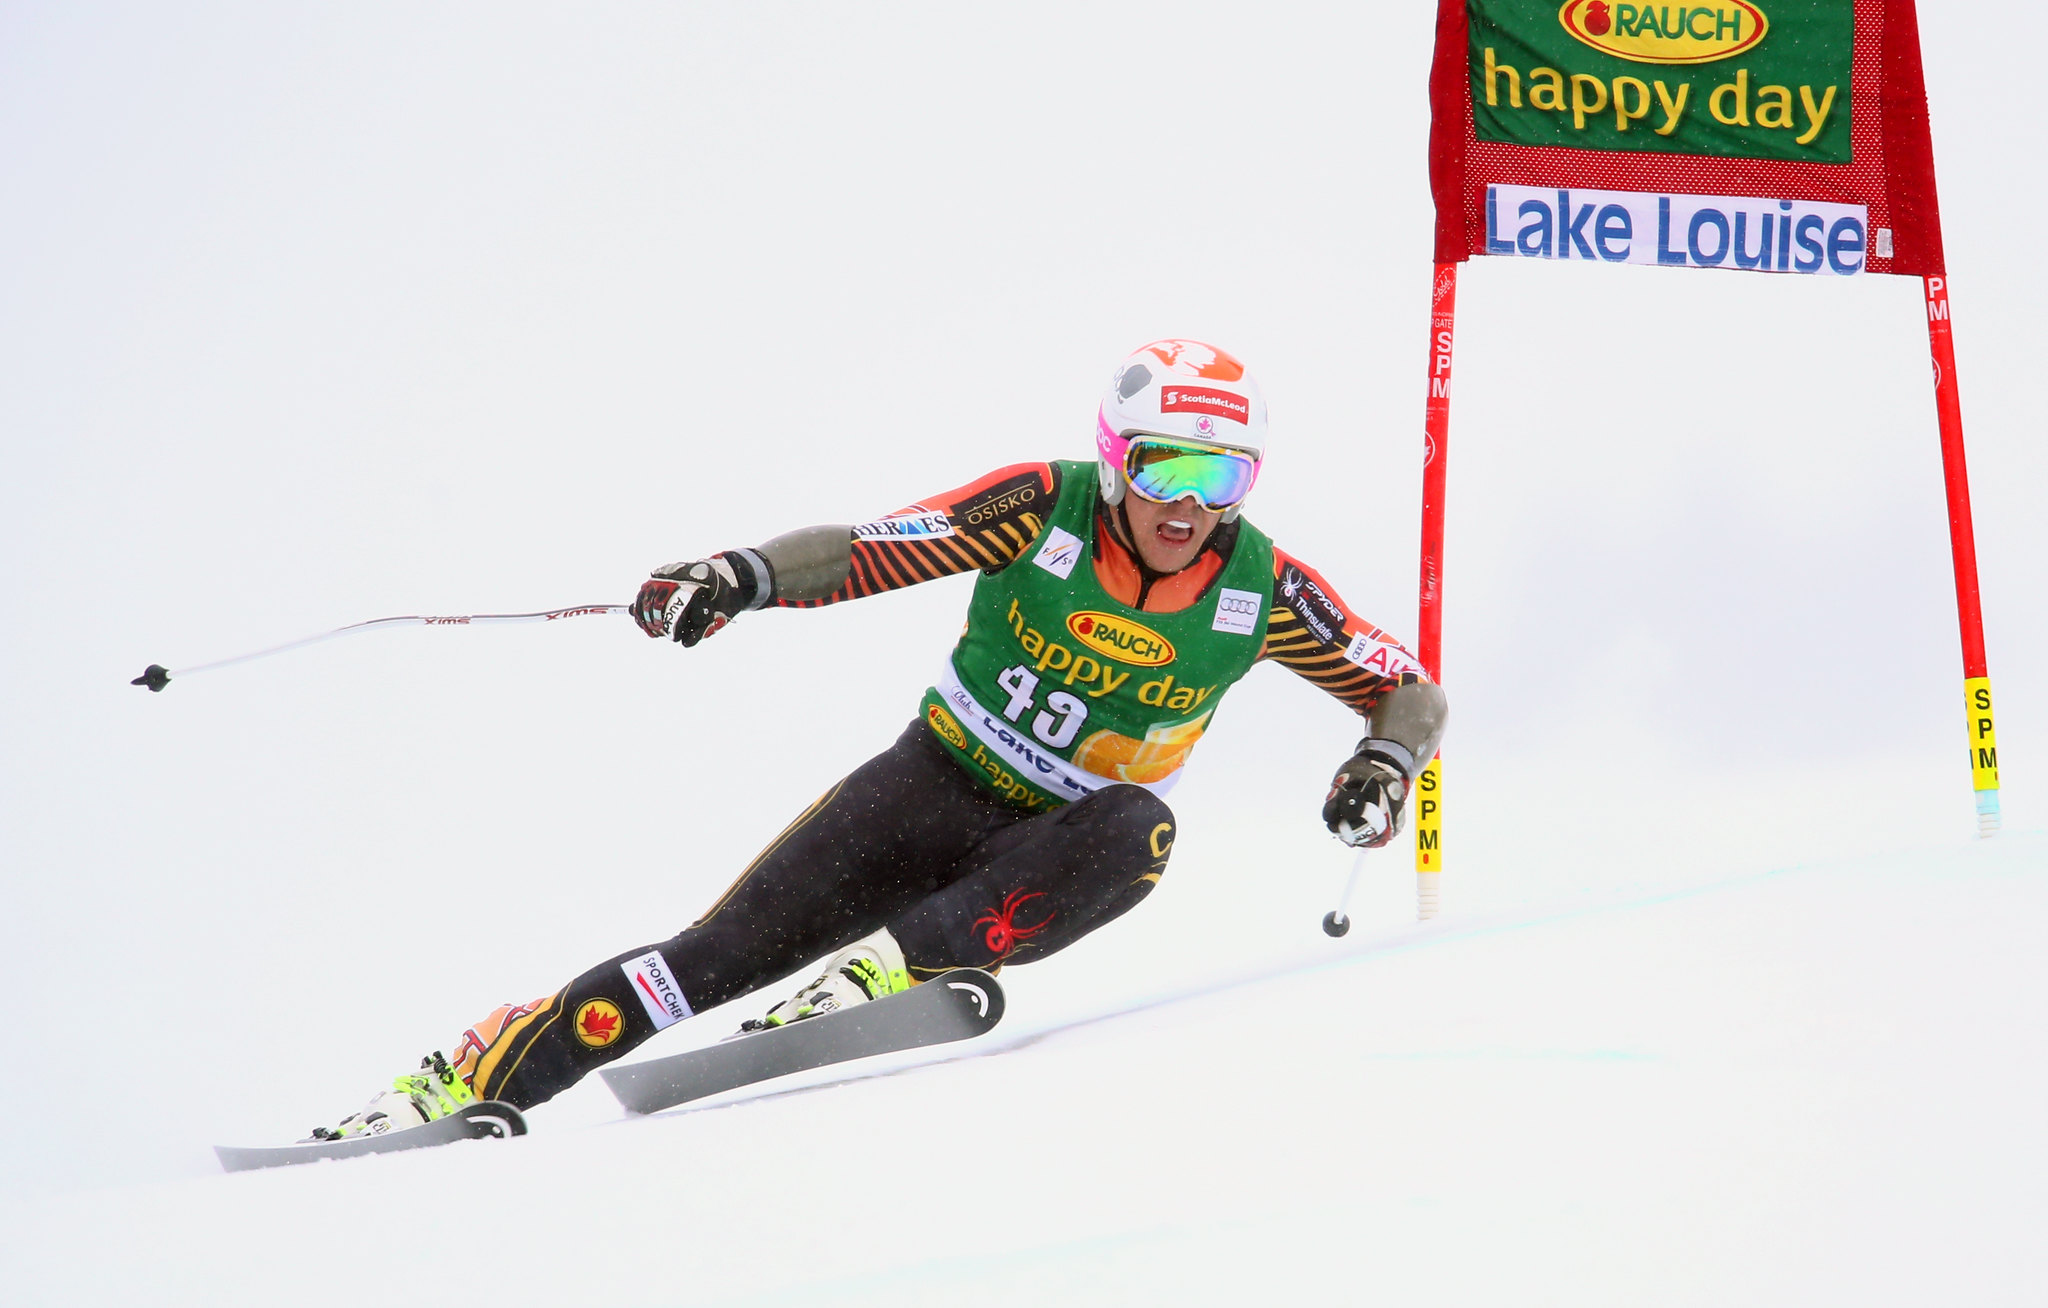 Ben Thomsen in action during the super-G at the FIS Alpine World Cup in Lake Louise, CAN